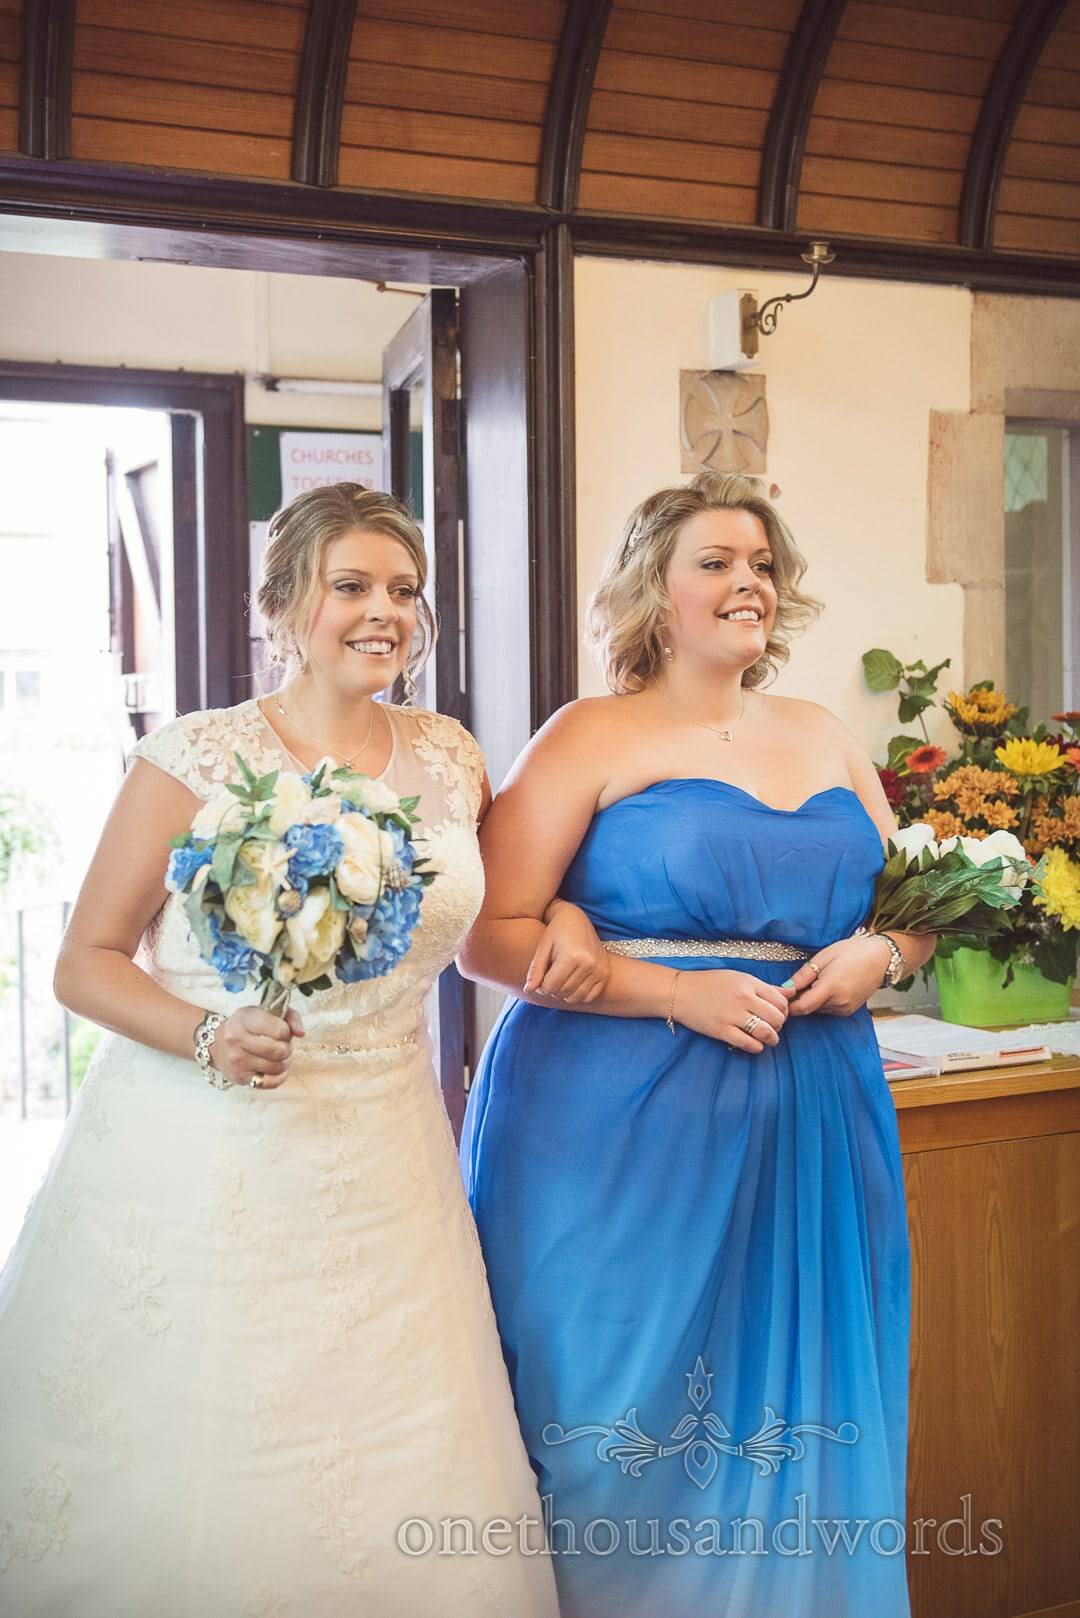 Bride and twin sister enter Catholic church wedding ceremony before walking up aisle